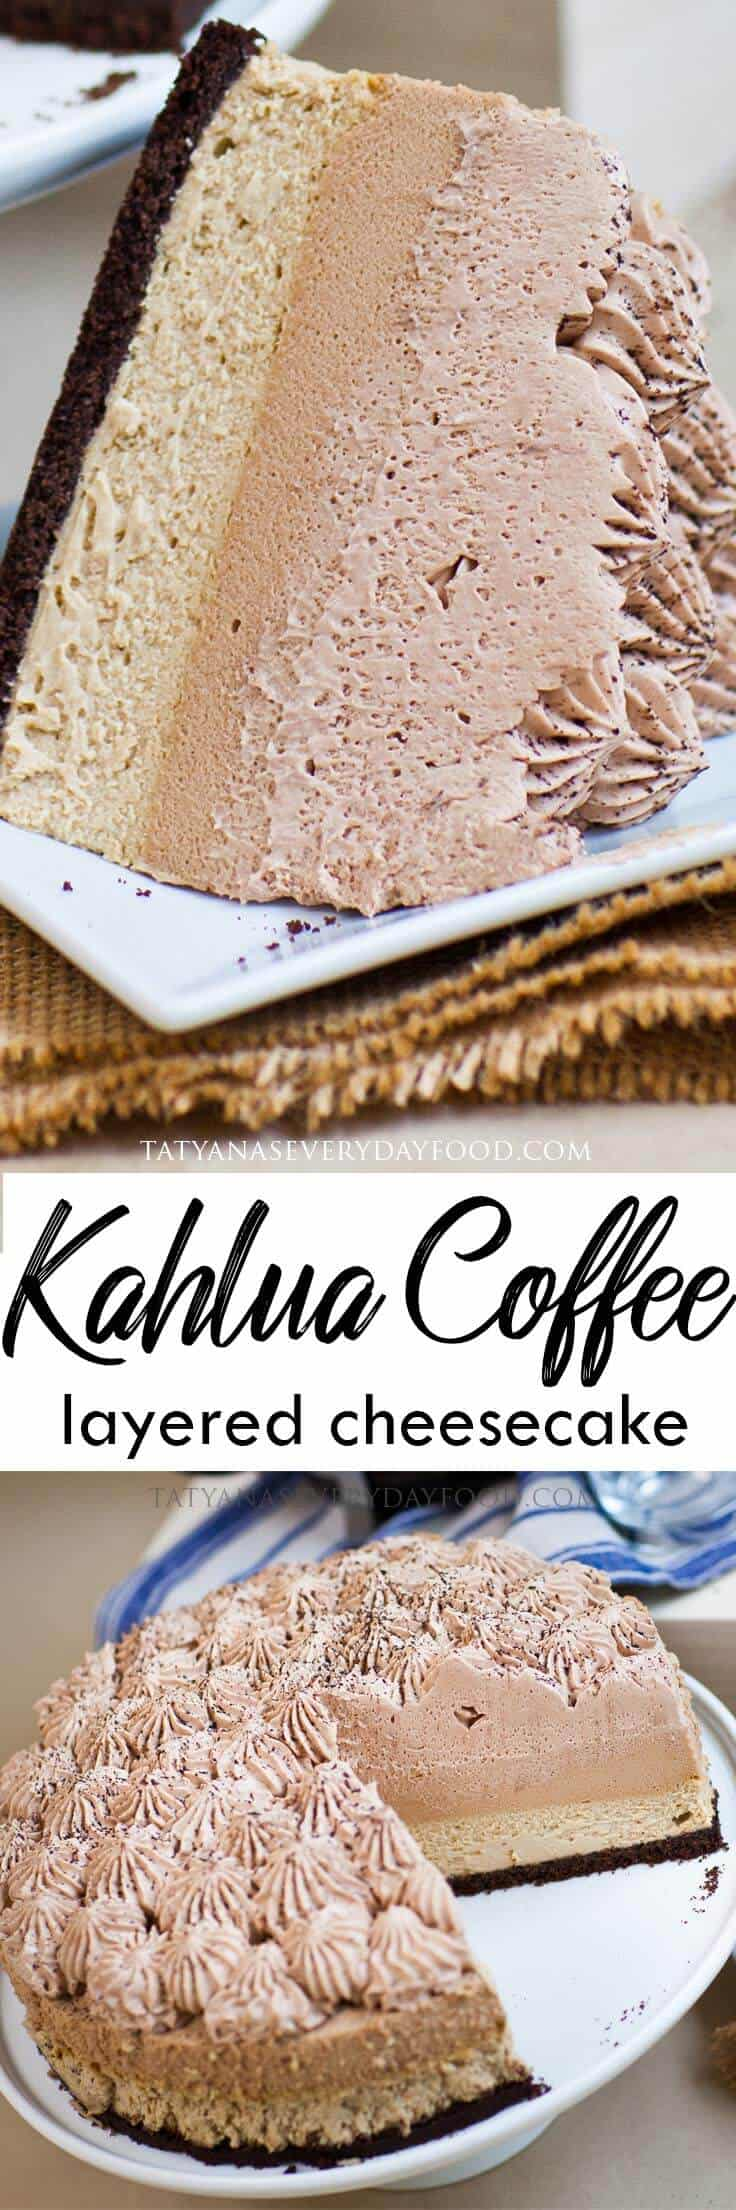 Kahlua Coffee Cheesecake video recipe